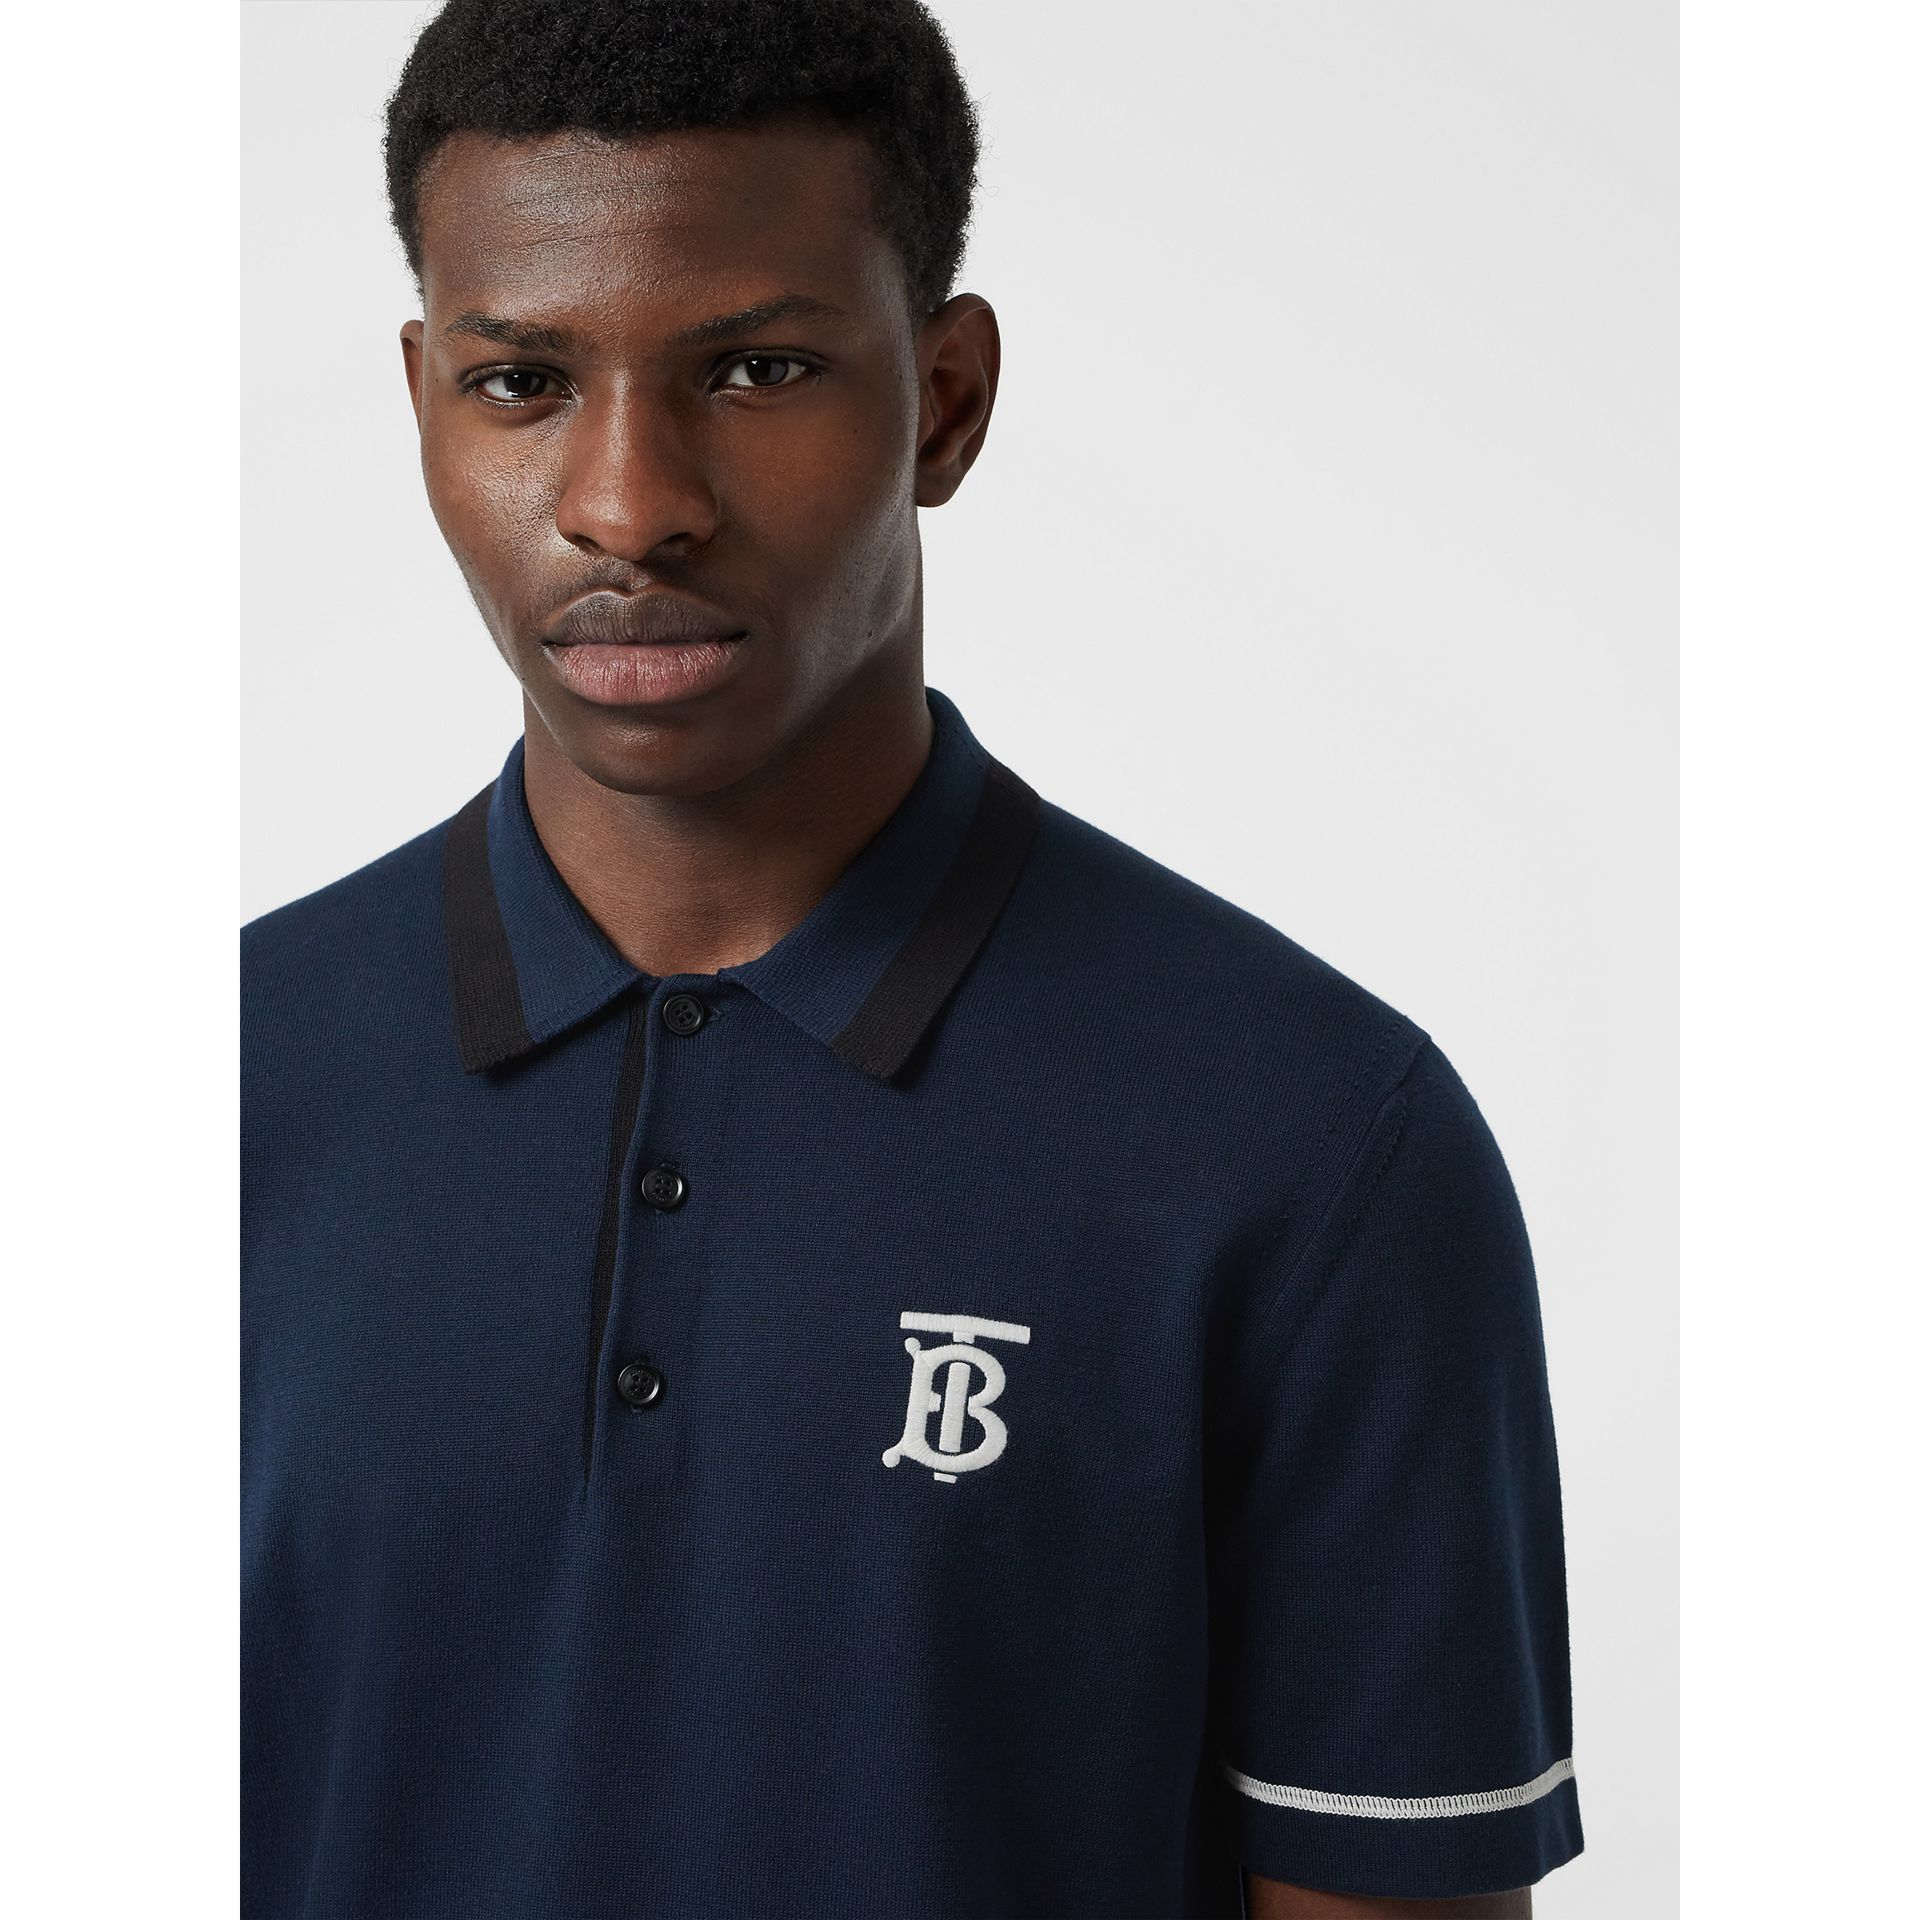 Monogram Motif Tipped Cotton Polo Shirt in Navy - Men | Burberry Singapore - gallery image 1